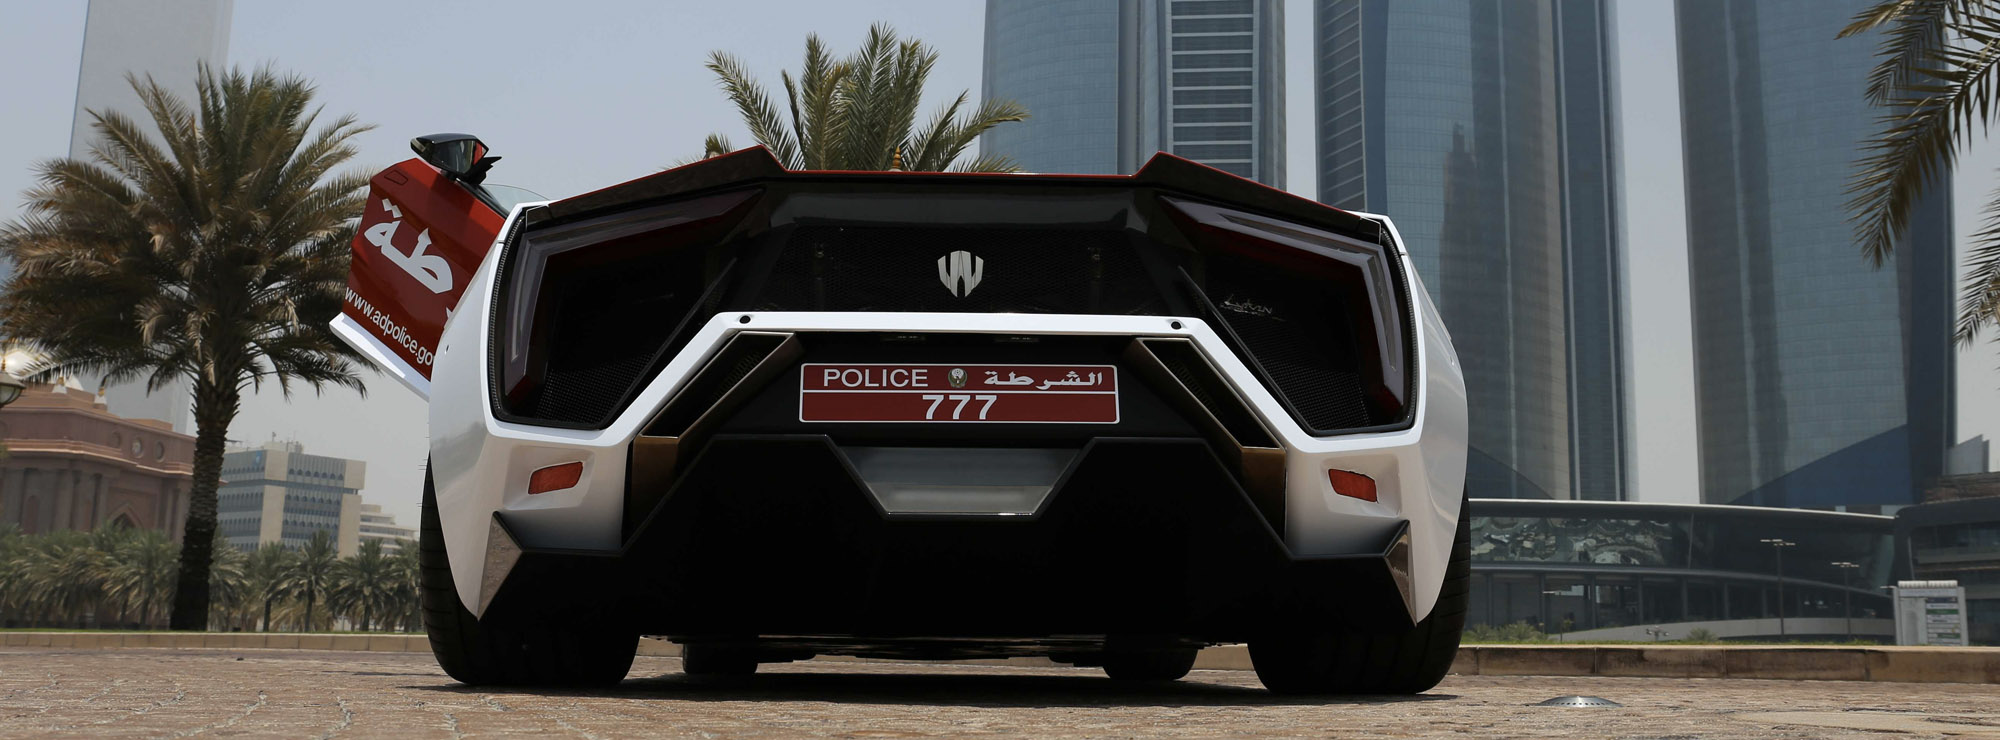 Dubai to replace real police with robocops in 2017